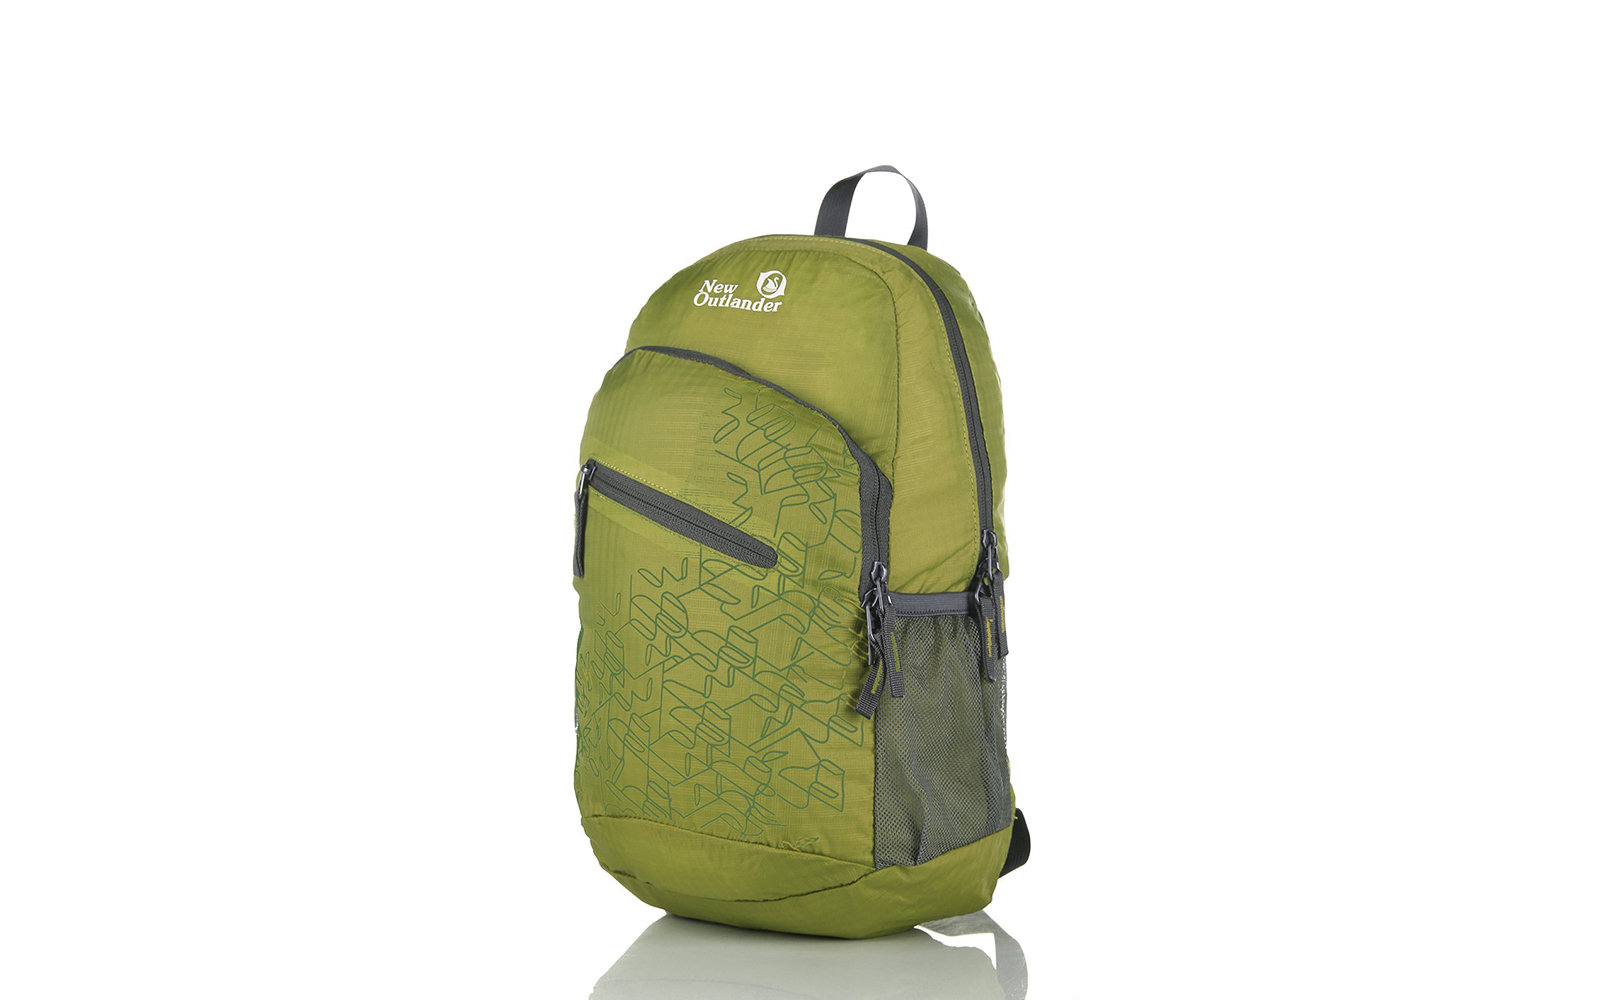 New Outlander Lightweight Travel Daypack f5e395a838dea